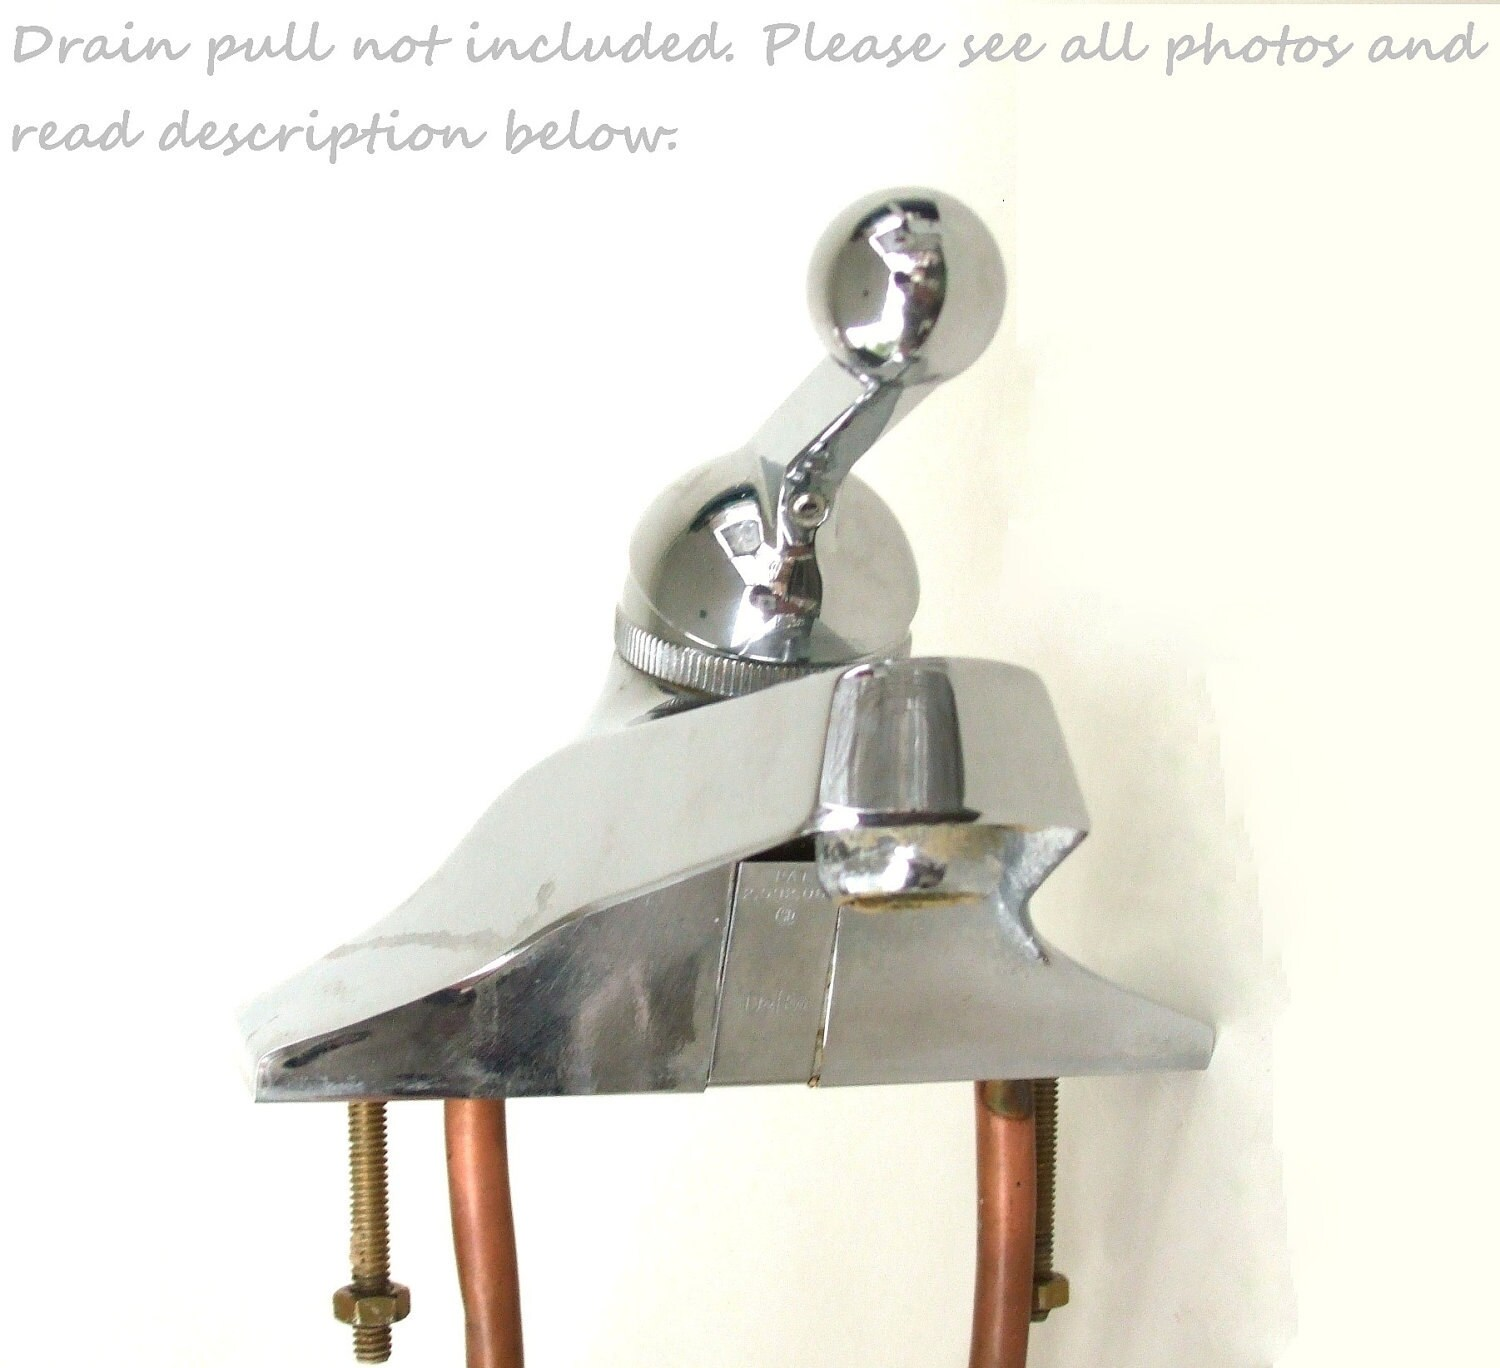 Mid century bathroom sink faucet architectural by Mid century modern bathroom faucets